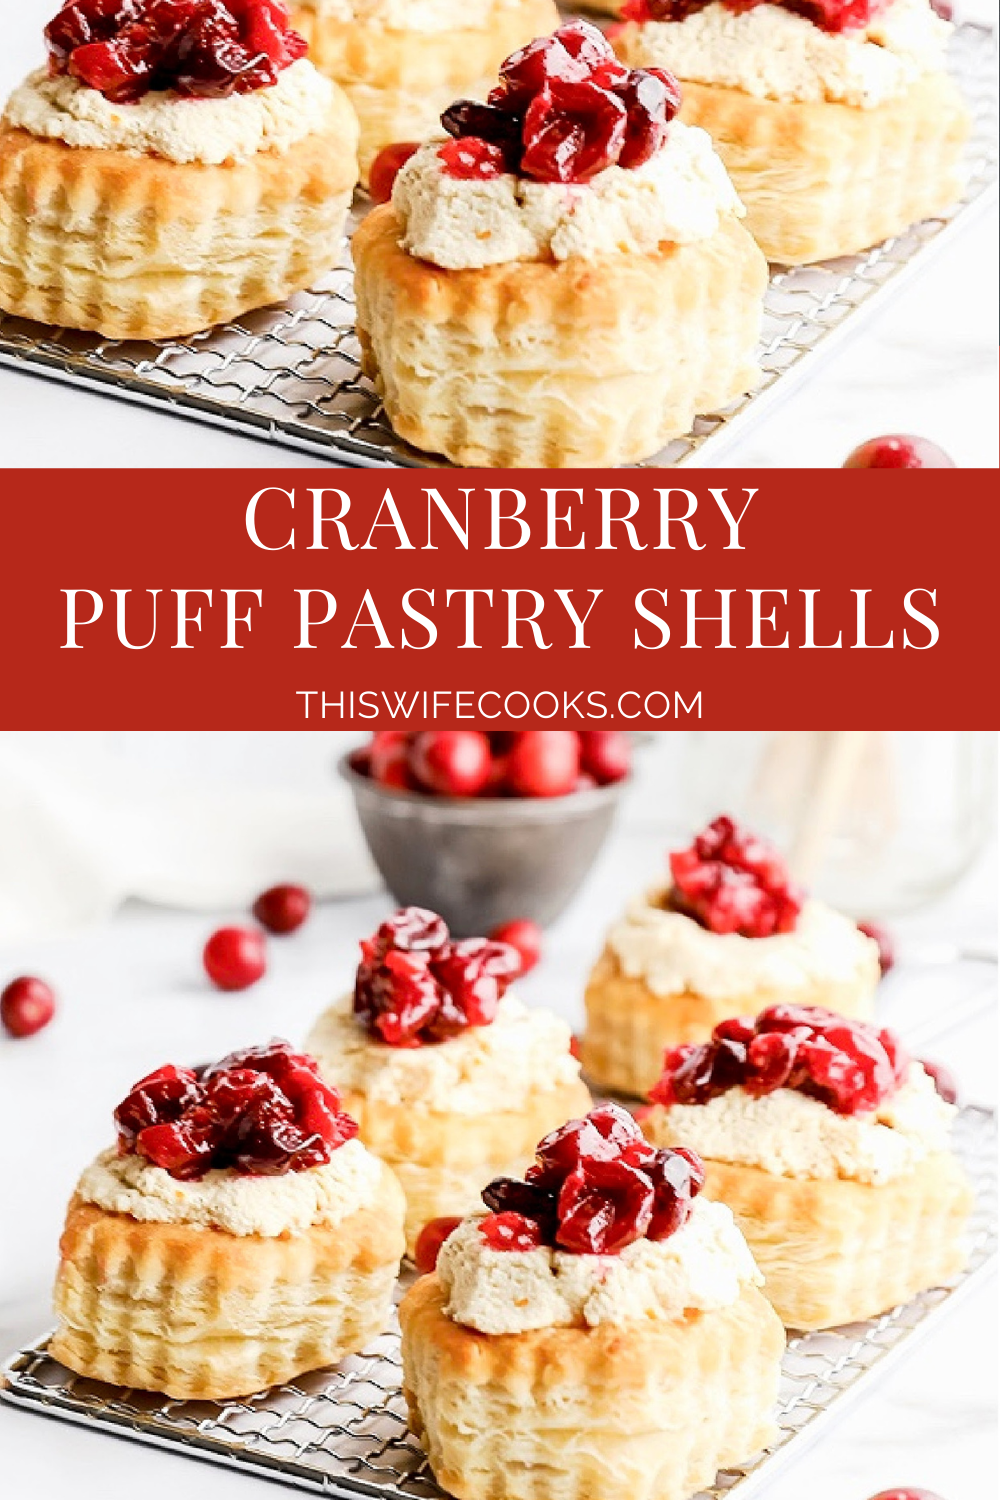 Cranberry Puff Pastry Shells ~ Baked puff-pastry shells filled with homemade, orange-infused tofu ricotta and tangy, sweet-roasted cranberries are a tasty treat that is both easy and elegant. via @thiswifecooks